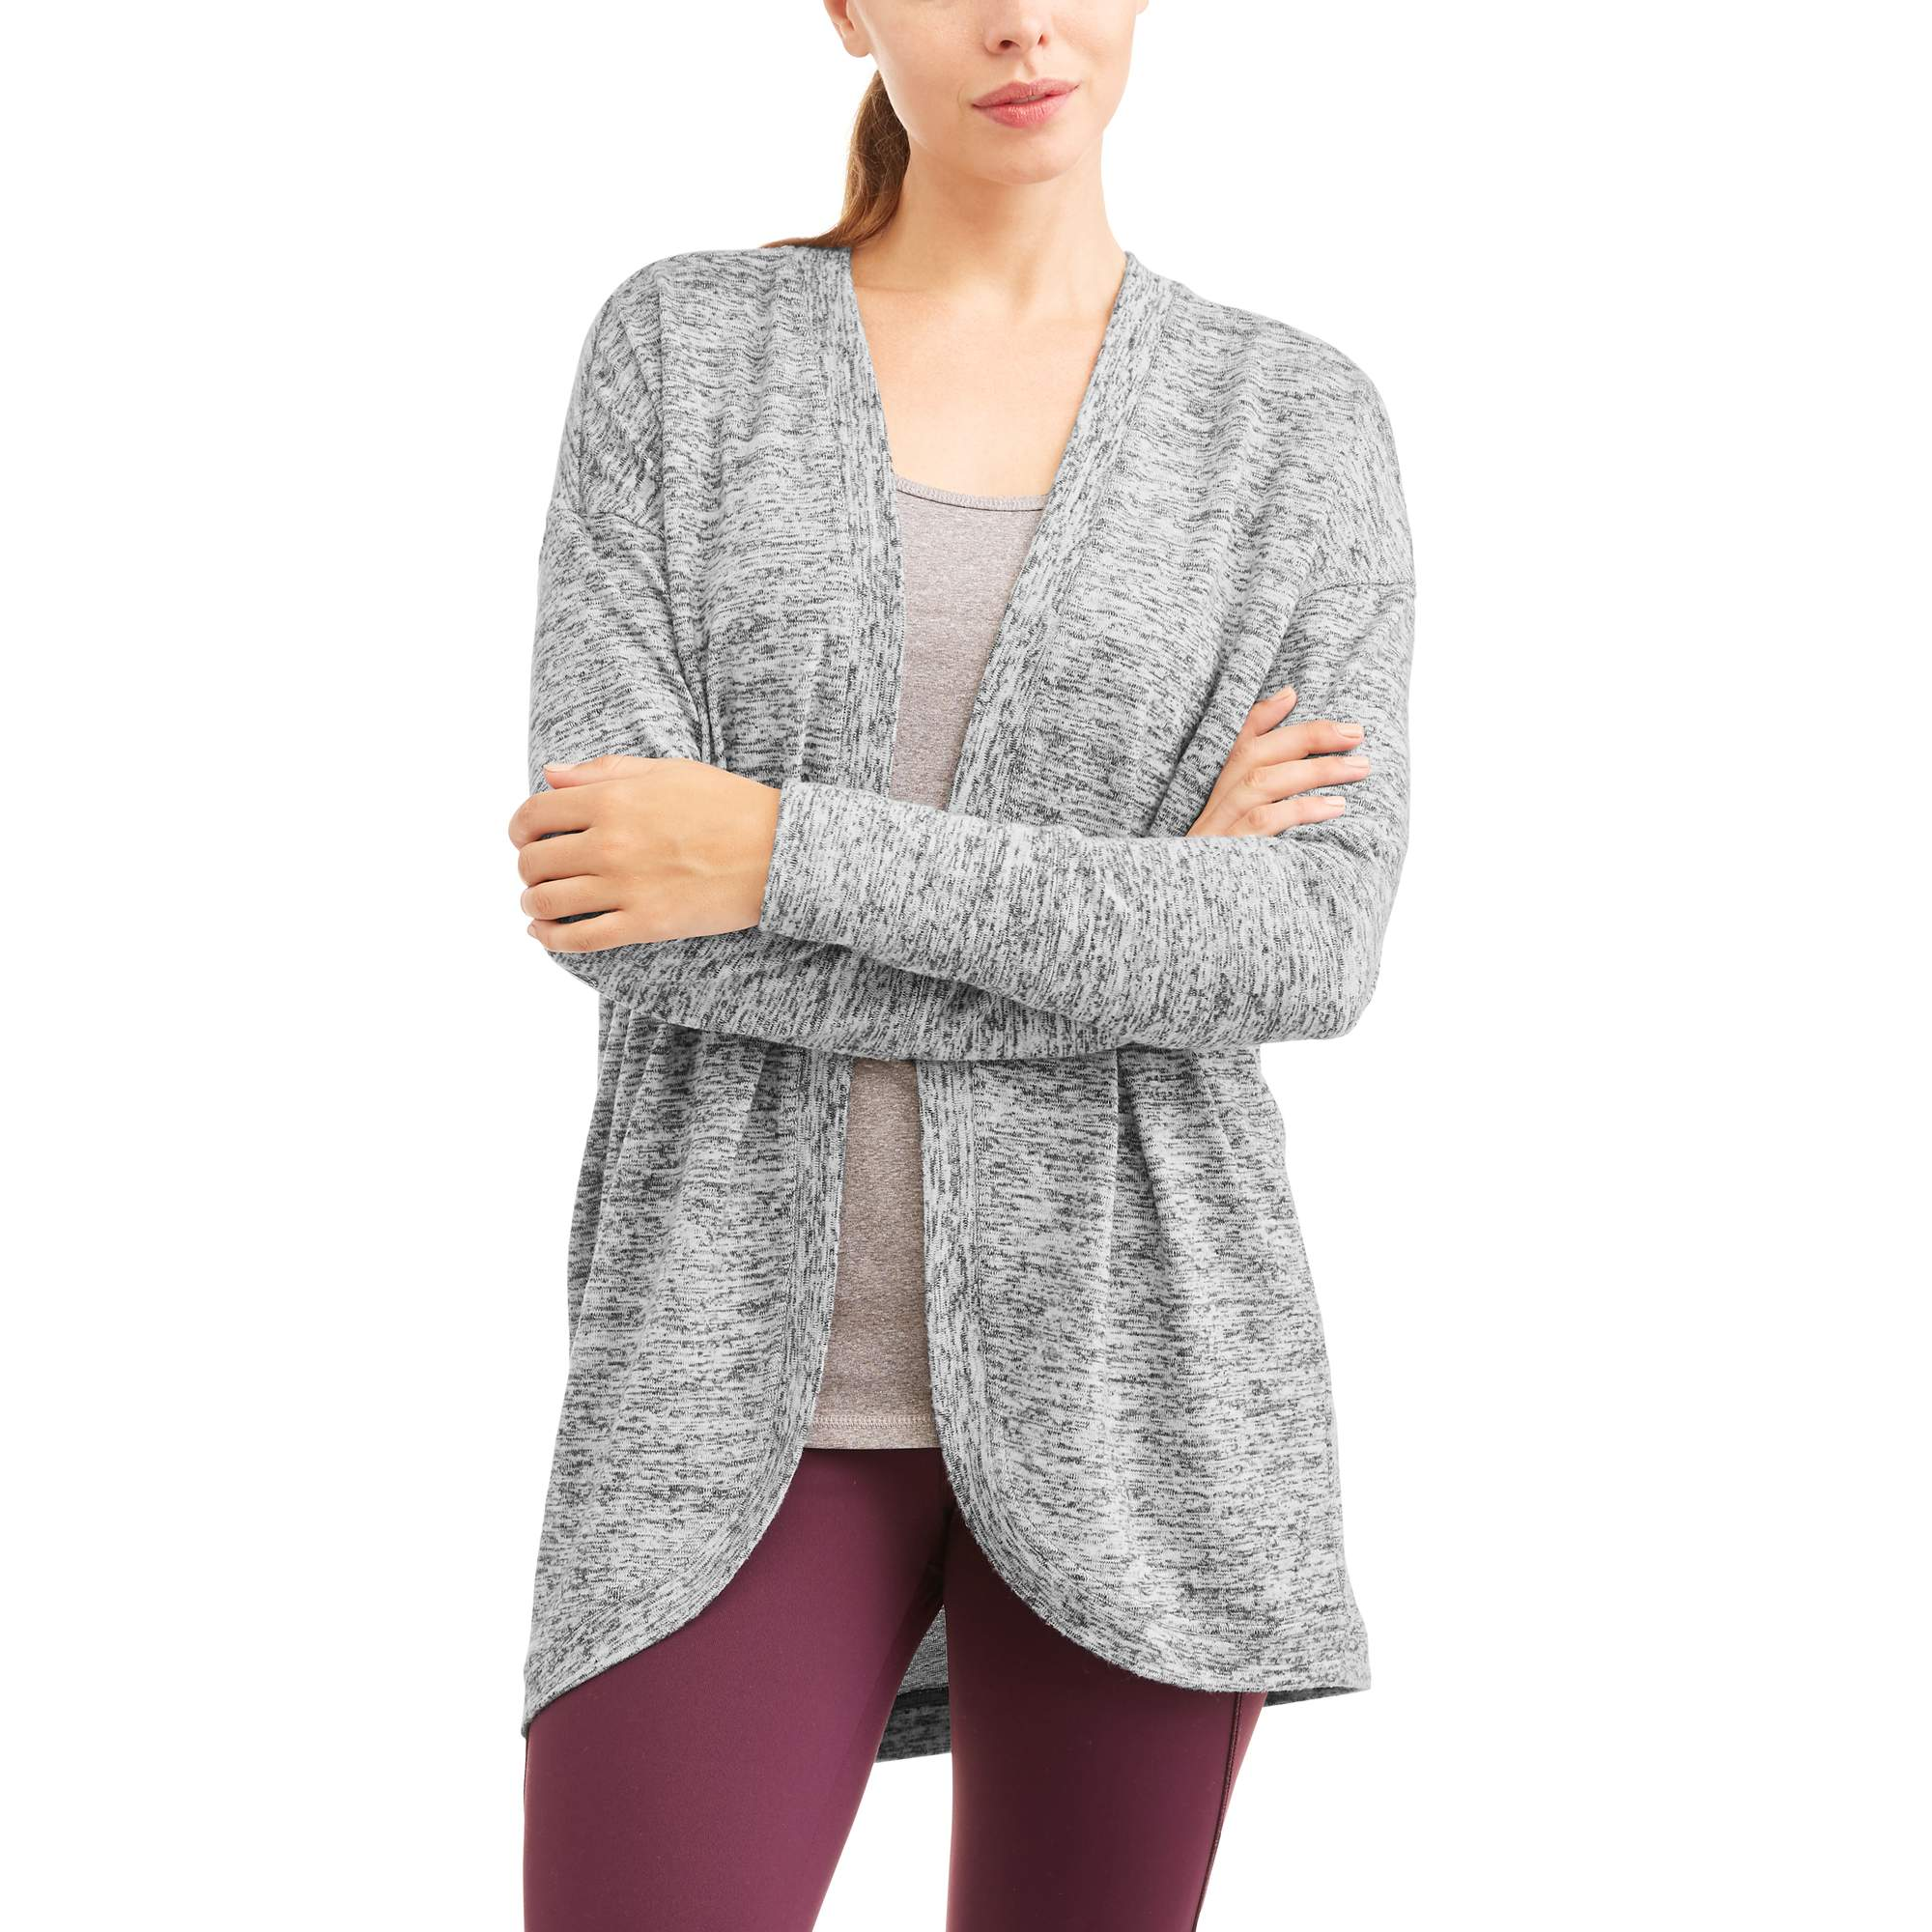 Danskin Now Women's Athleisure Layering Cardigan